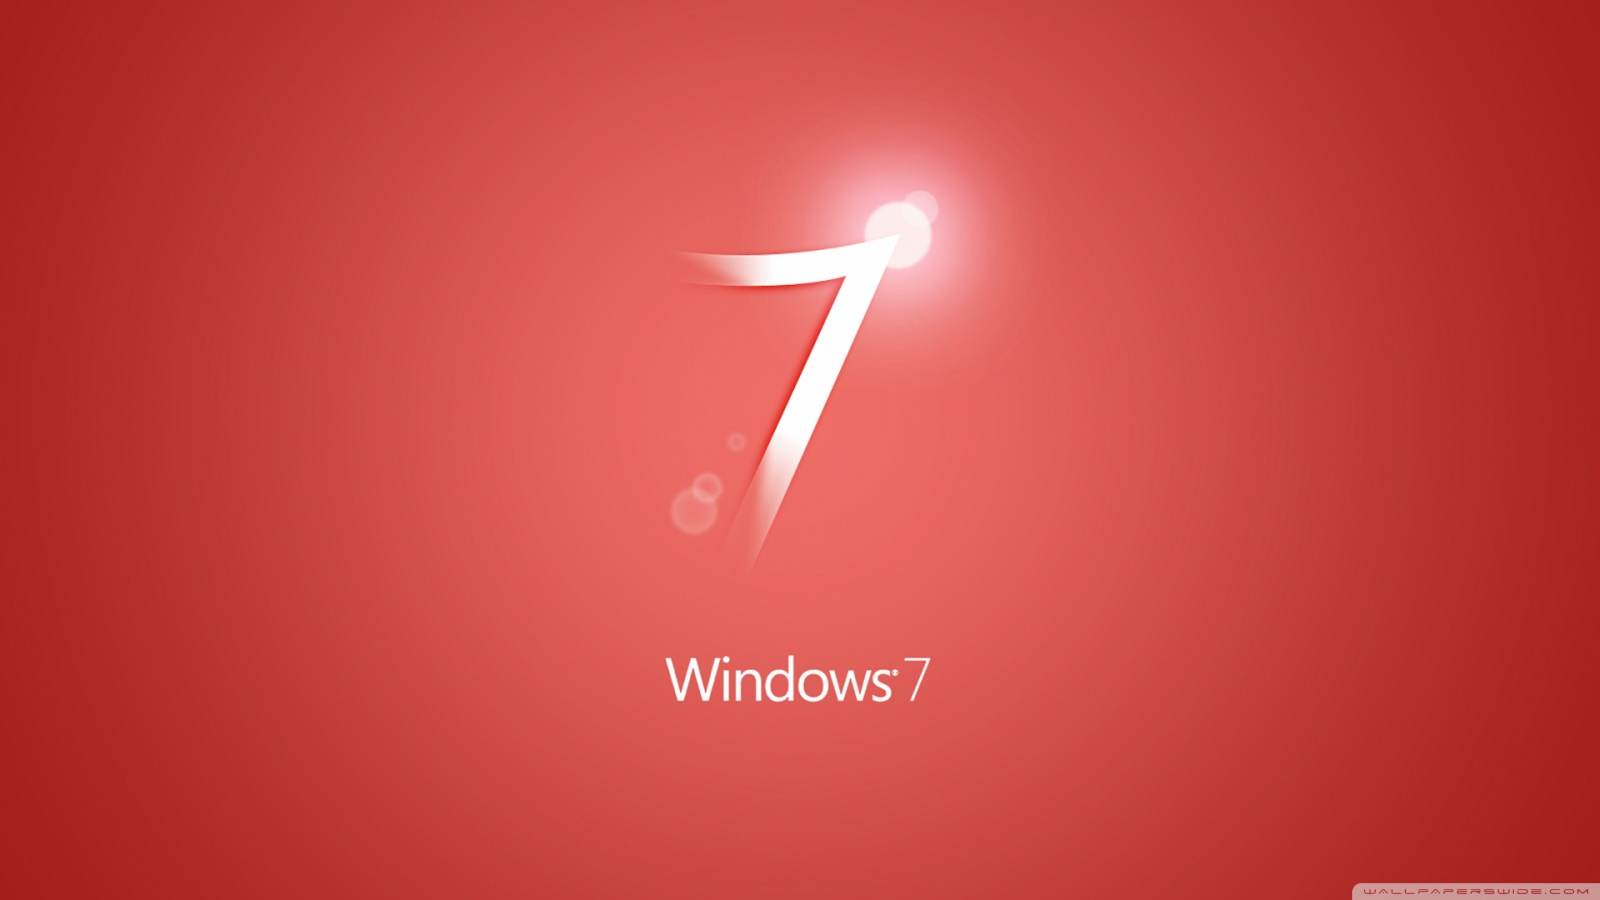 Windows 7 Wallpaper Red